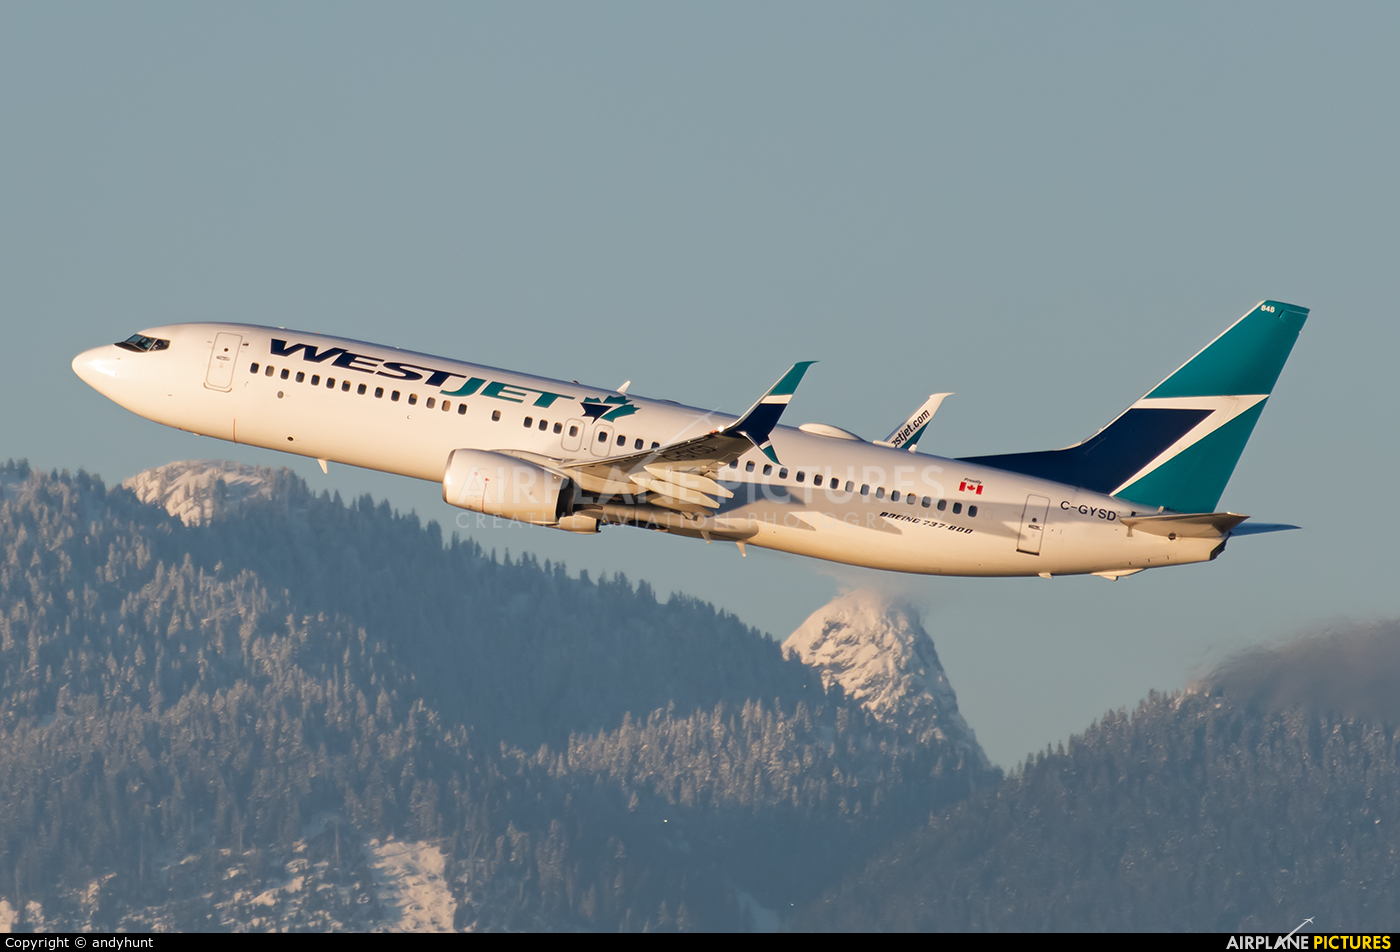 WestJet Airlines C-GYSD aircraft at Vancouver Intl, BC